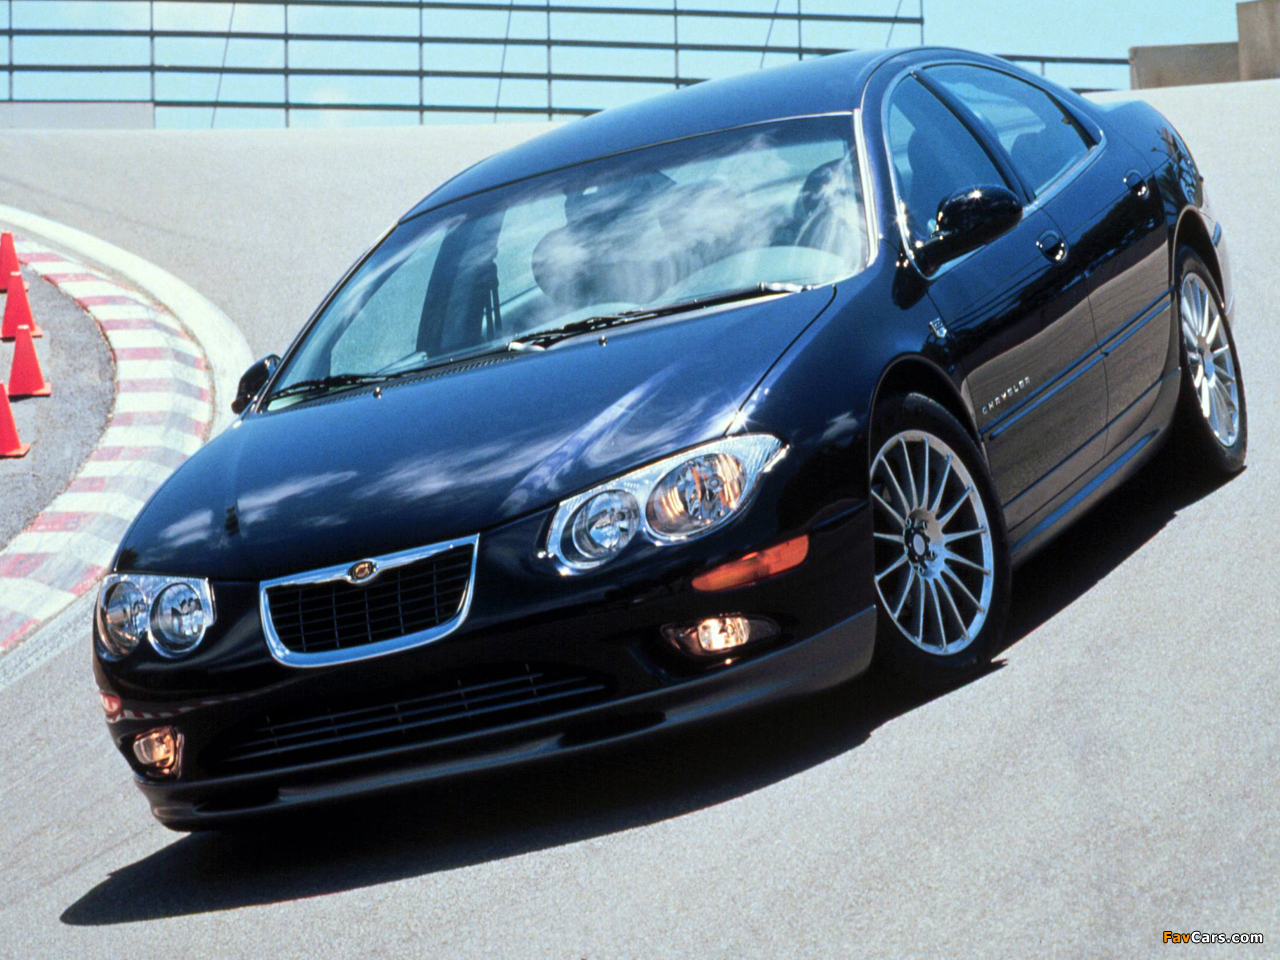 sedan photos information origin oem fq and zombiedrive special chrysler